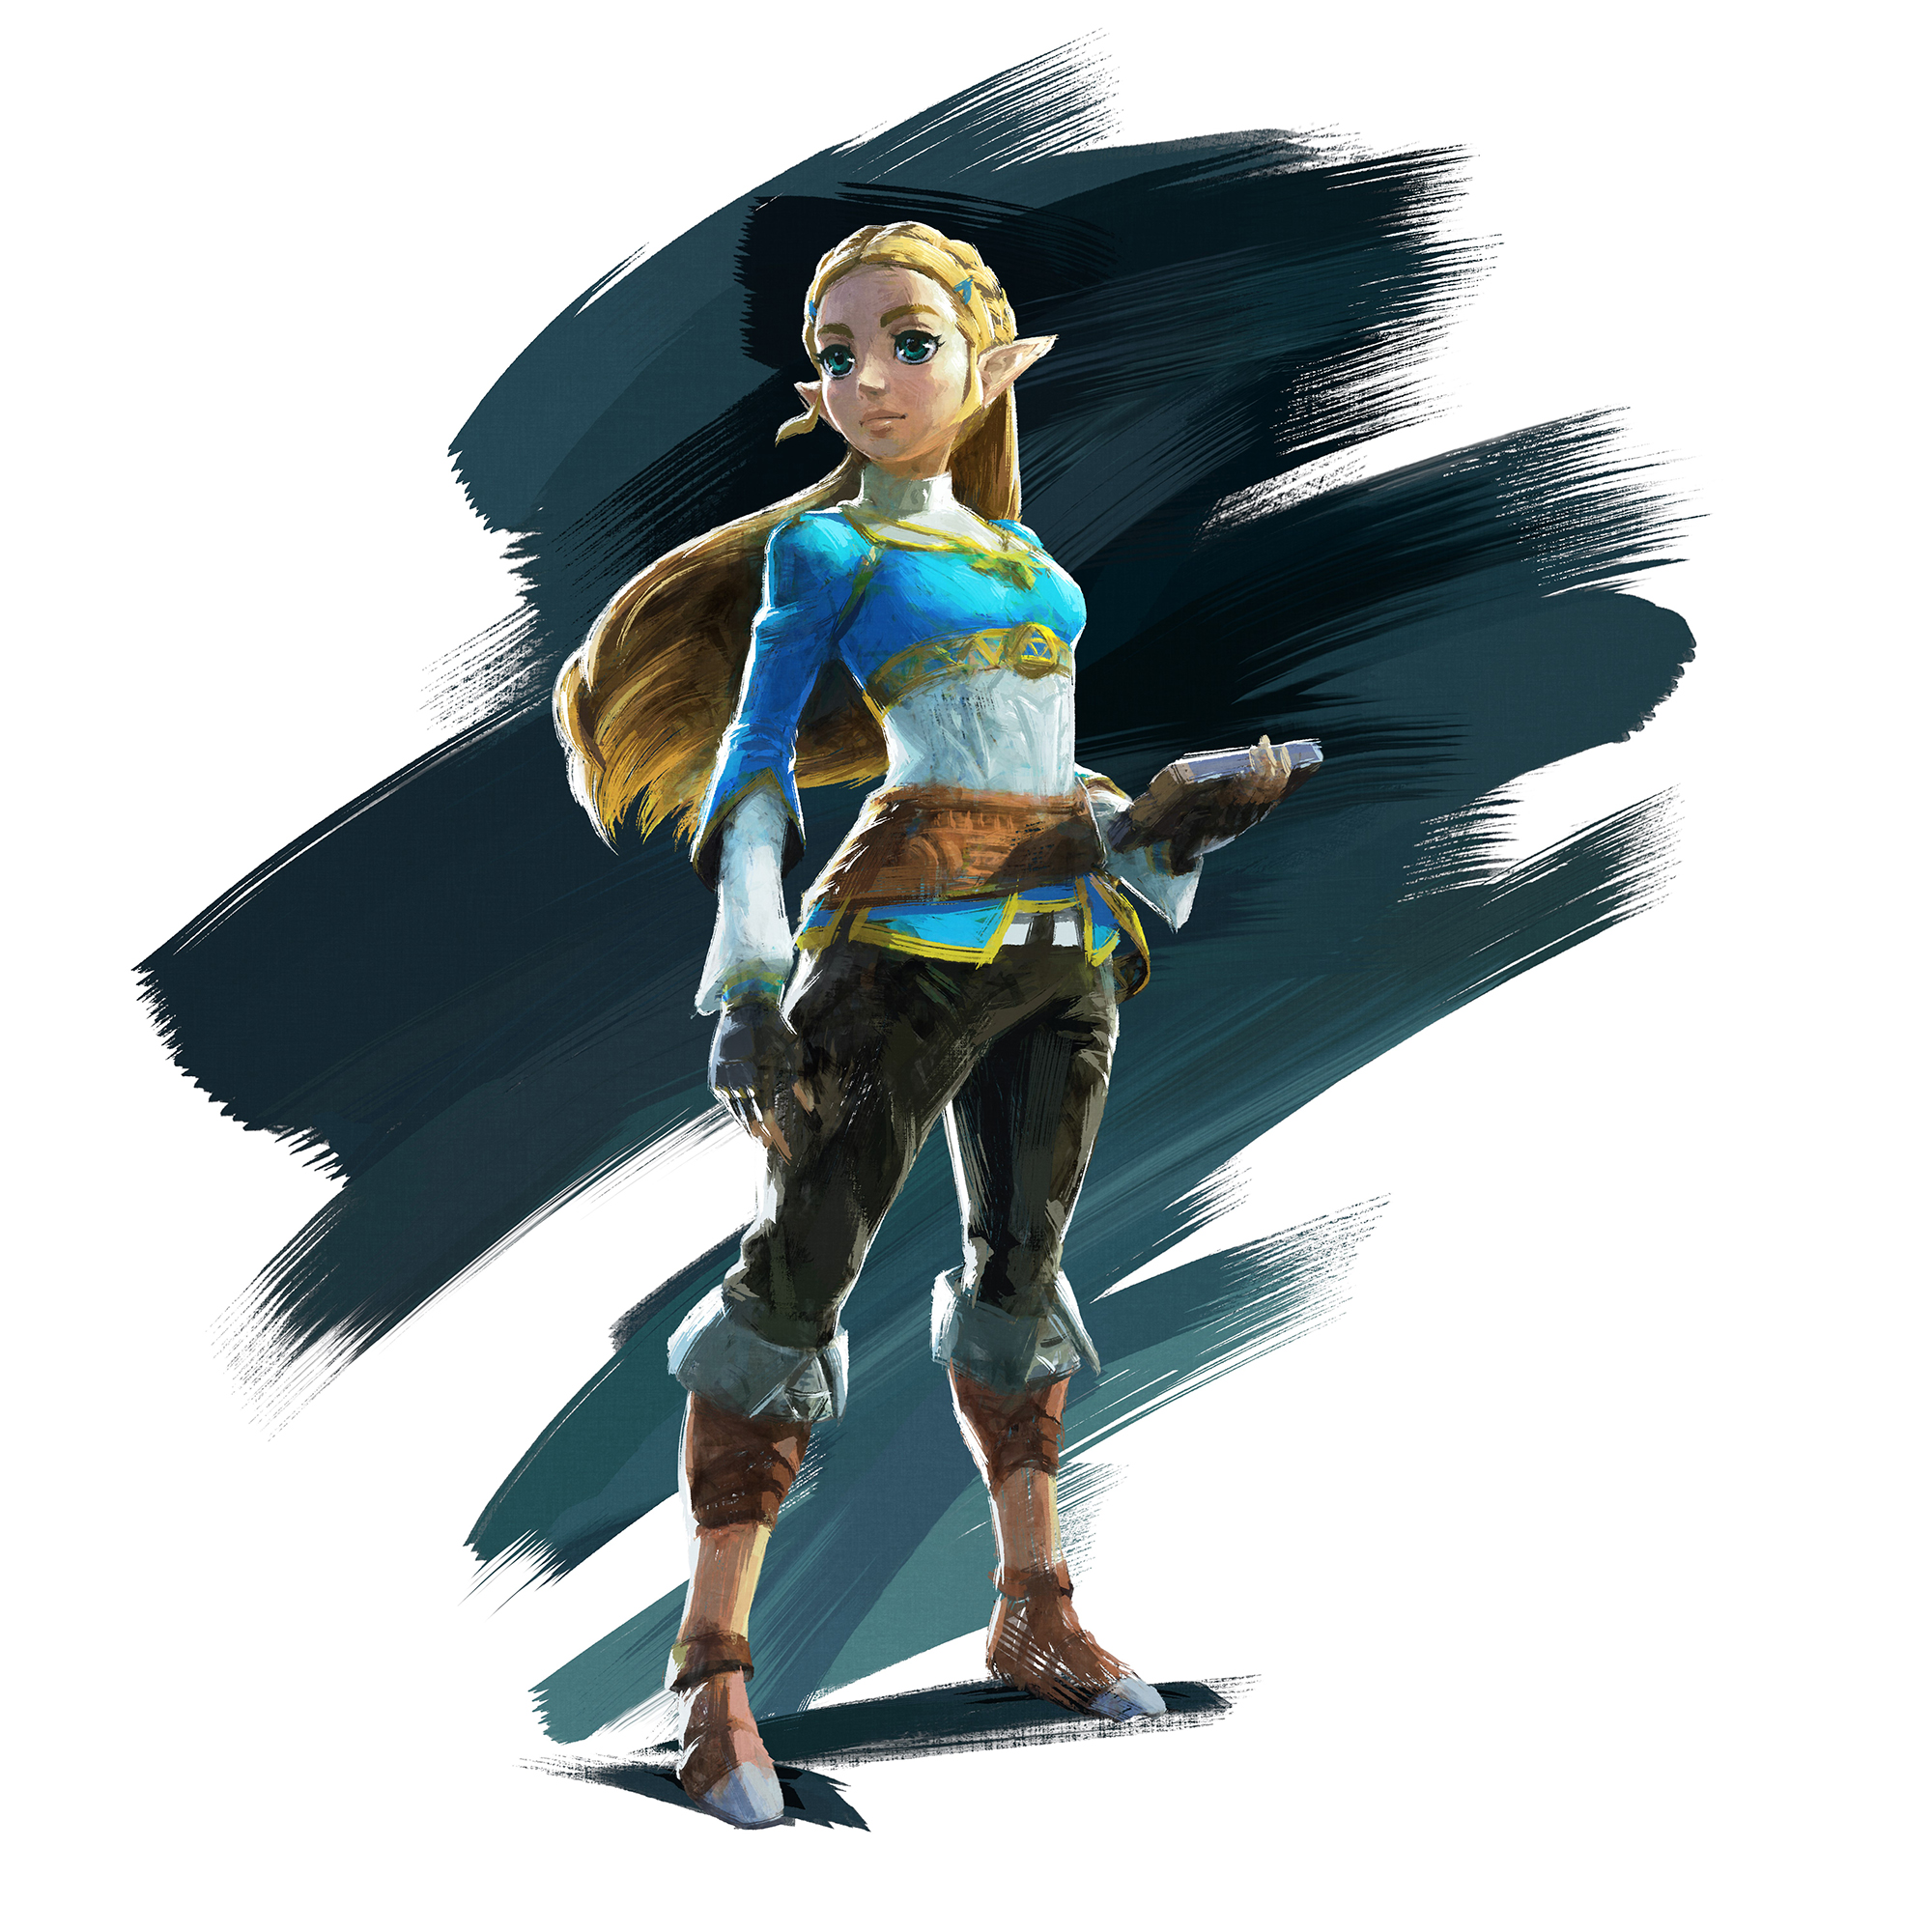 The Legend of Zelda: Breath of the Wild image 47